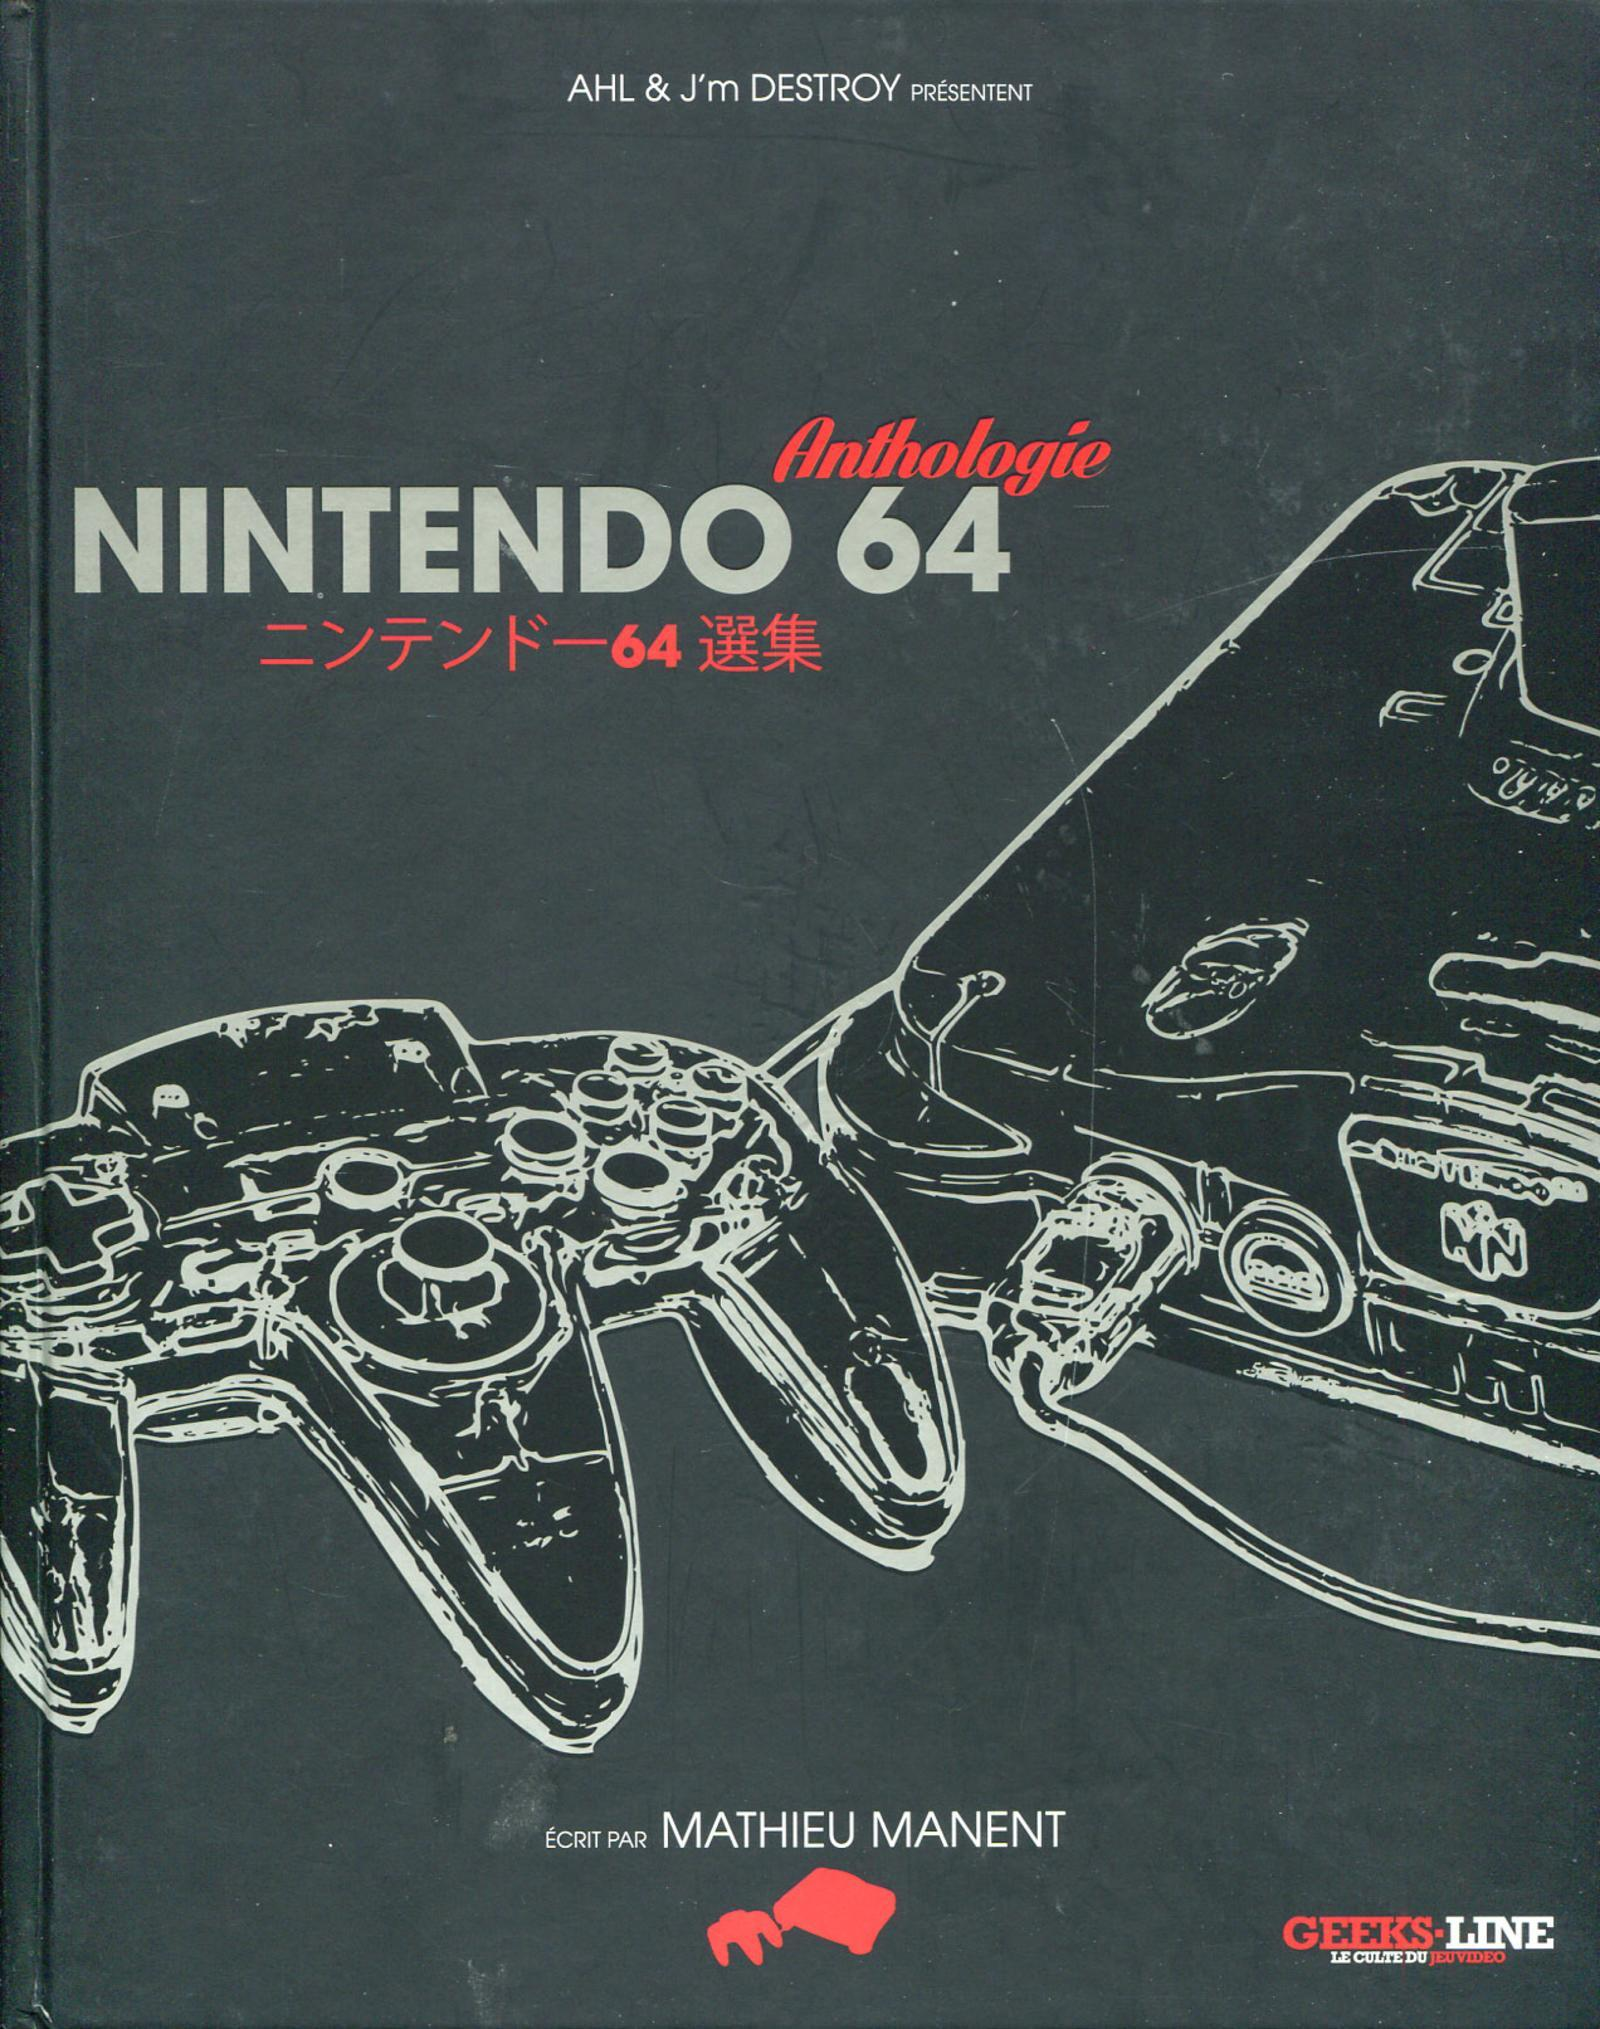 NINTENDO 64 ANTHOLOGIE